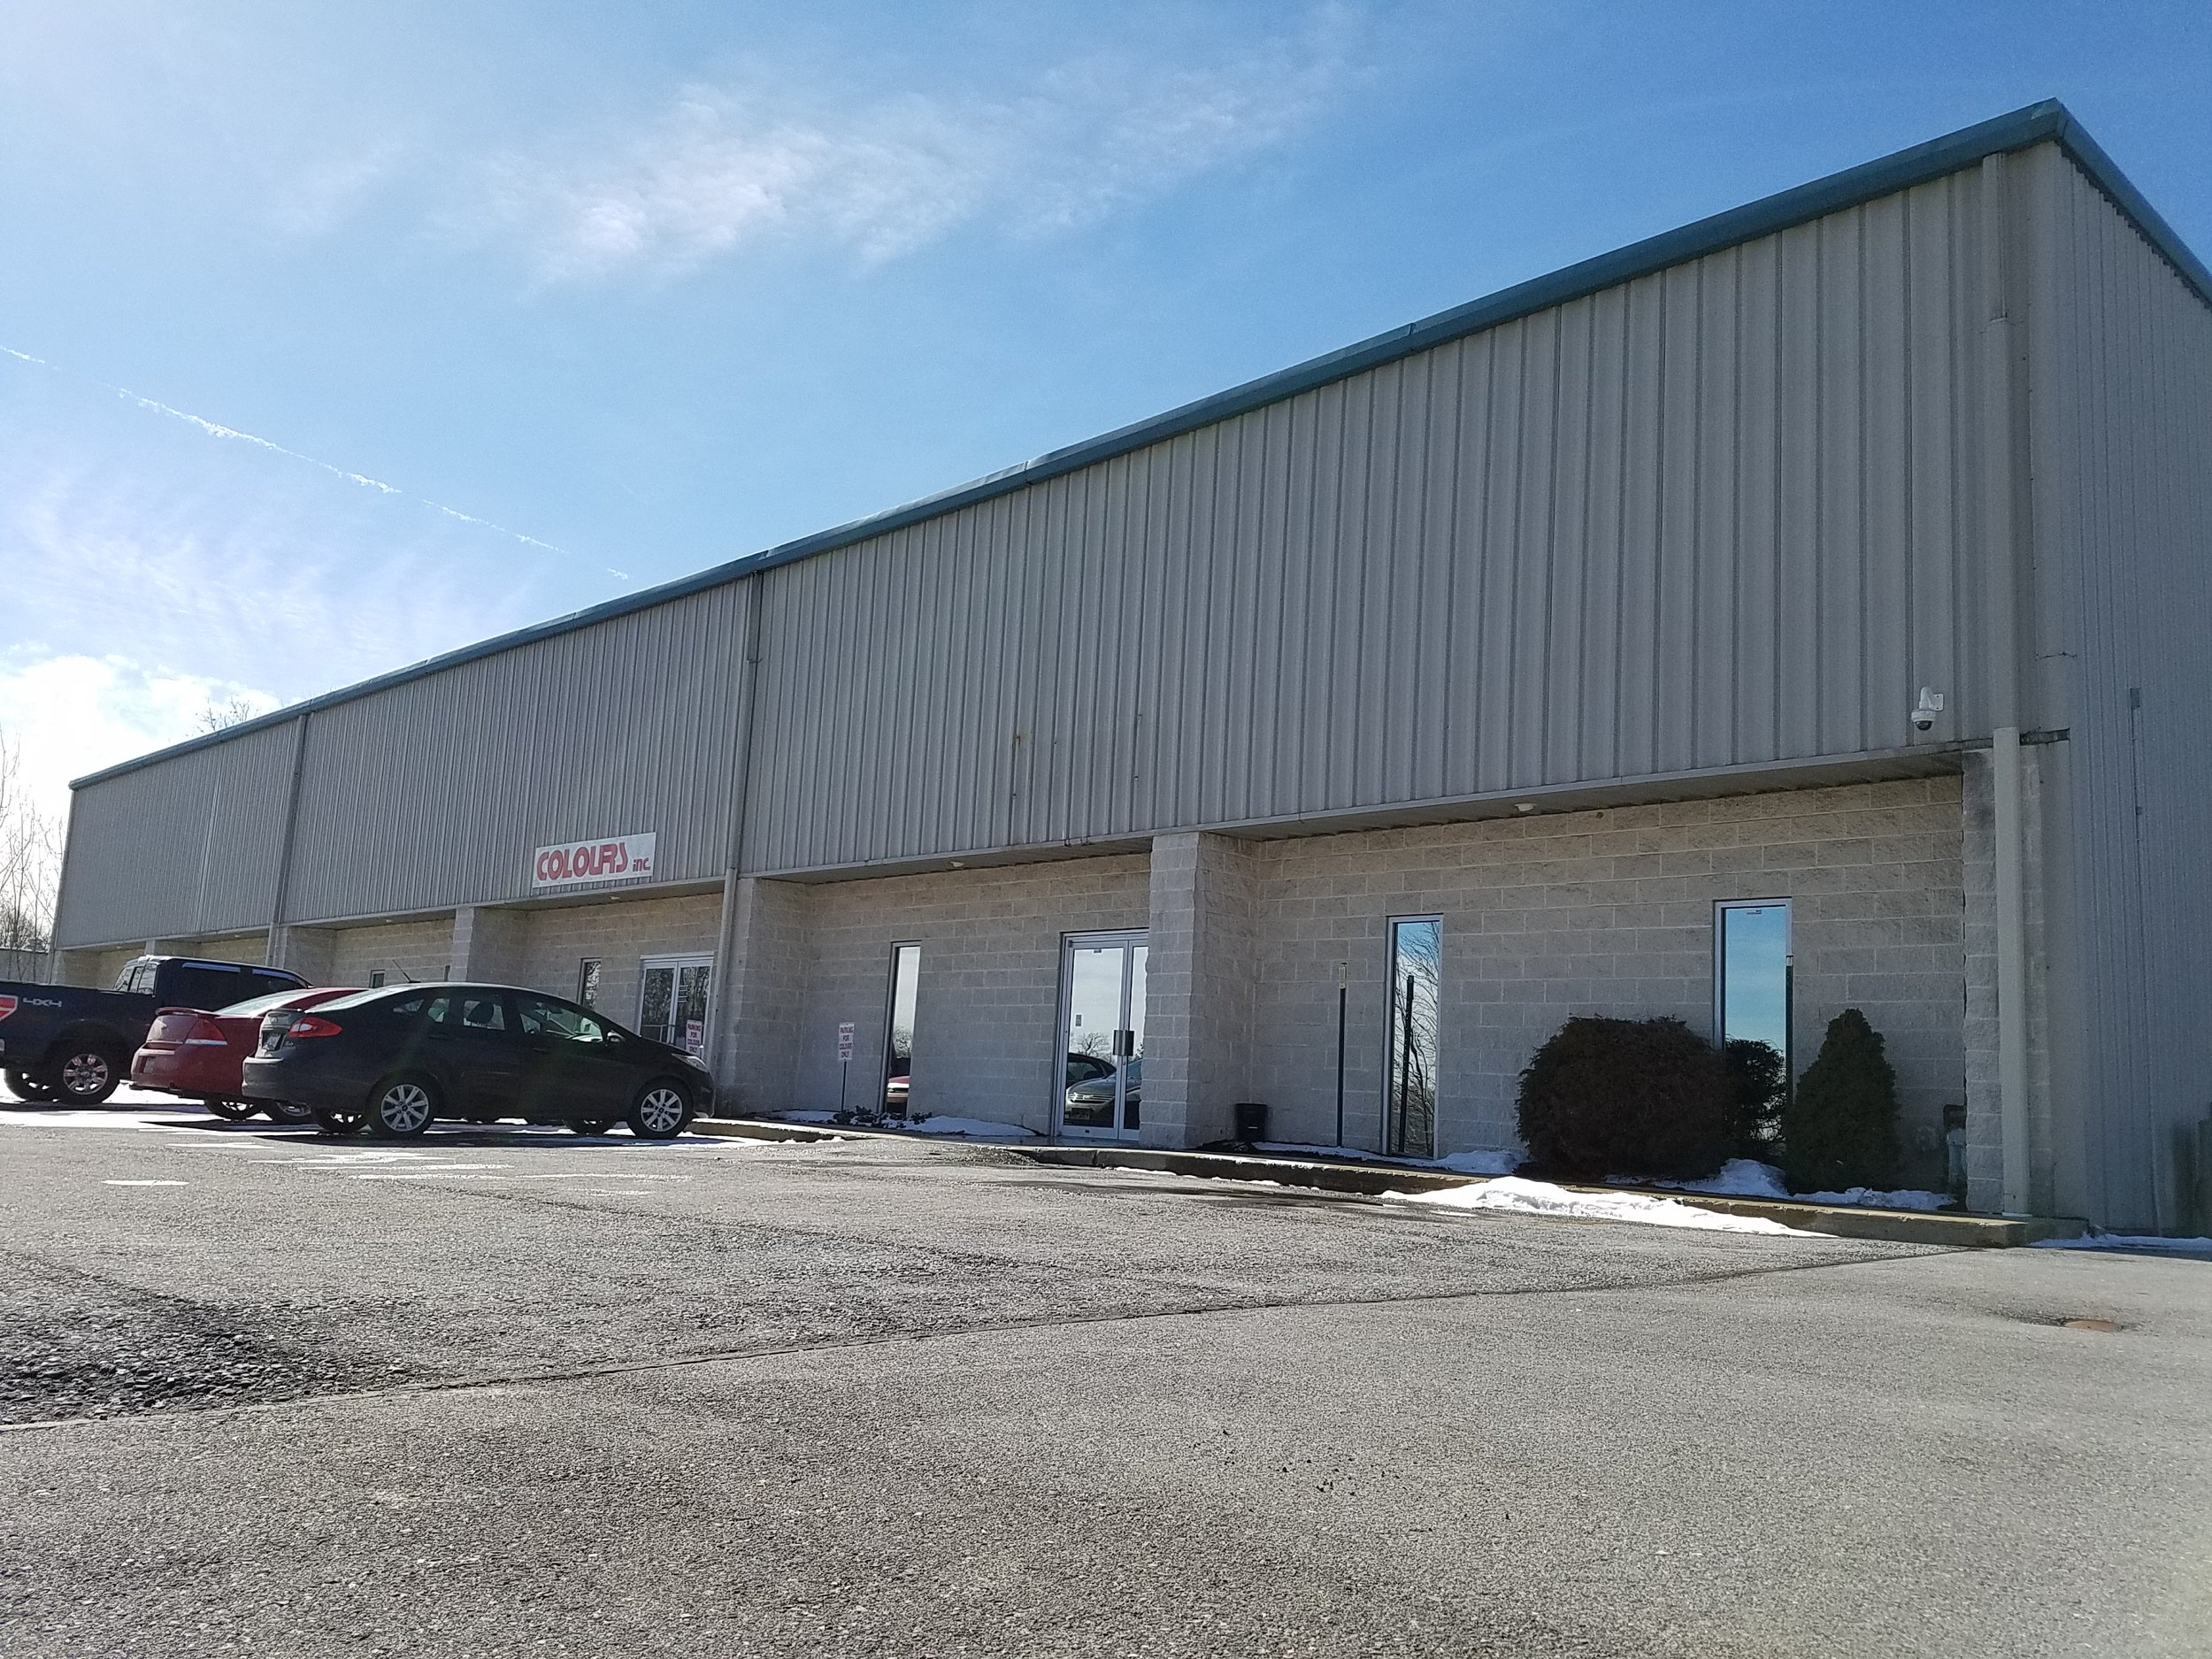 357 Industrial Park Road Ebensburg PA 15931 - For Lease $1,950 per Month